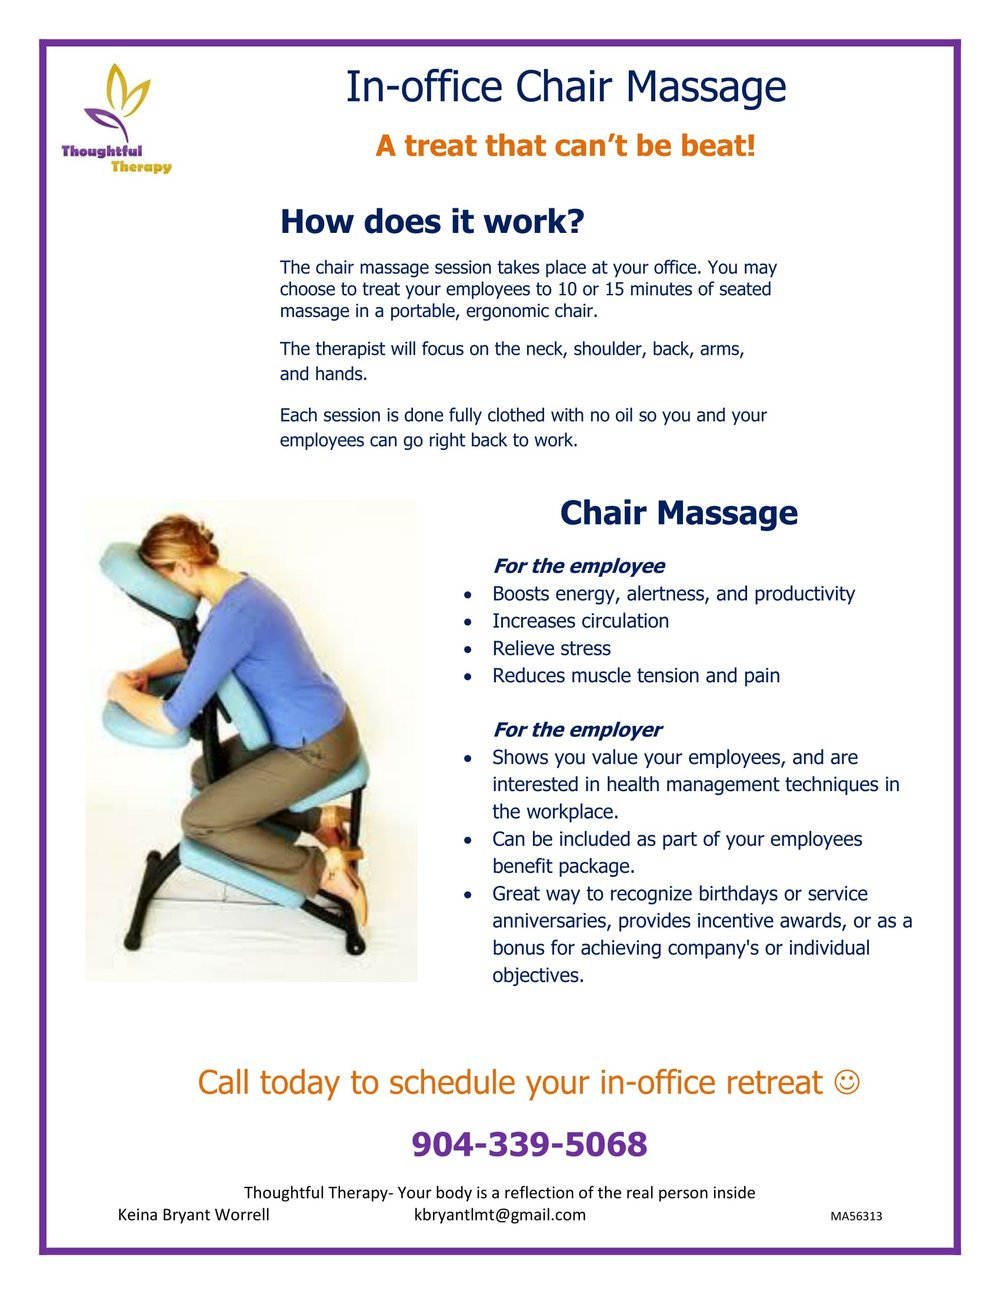 Thoughtful Therapy Chair Massage-1.jpg